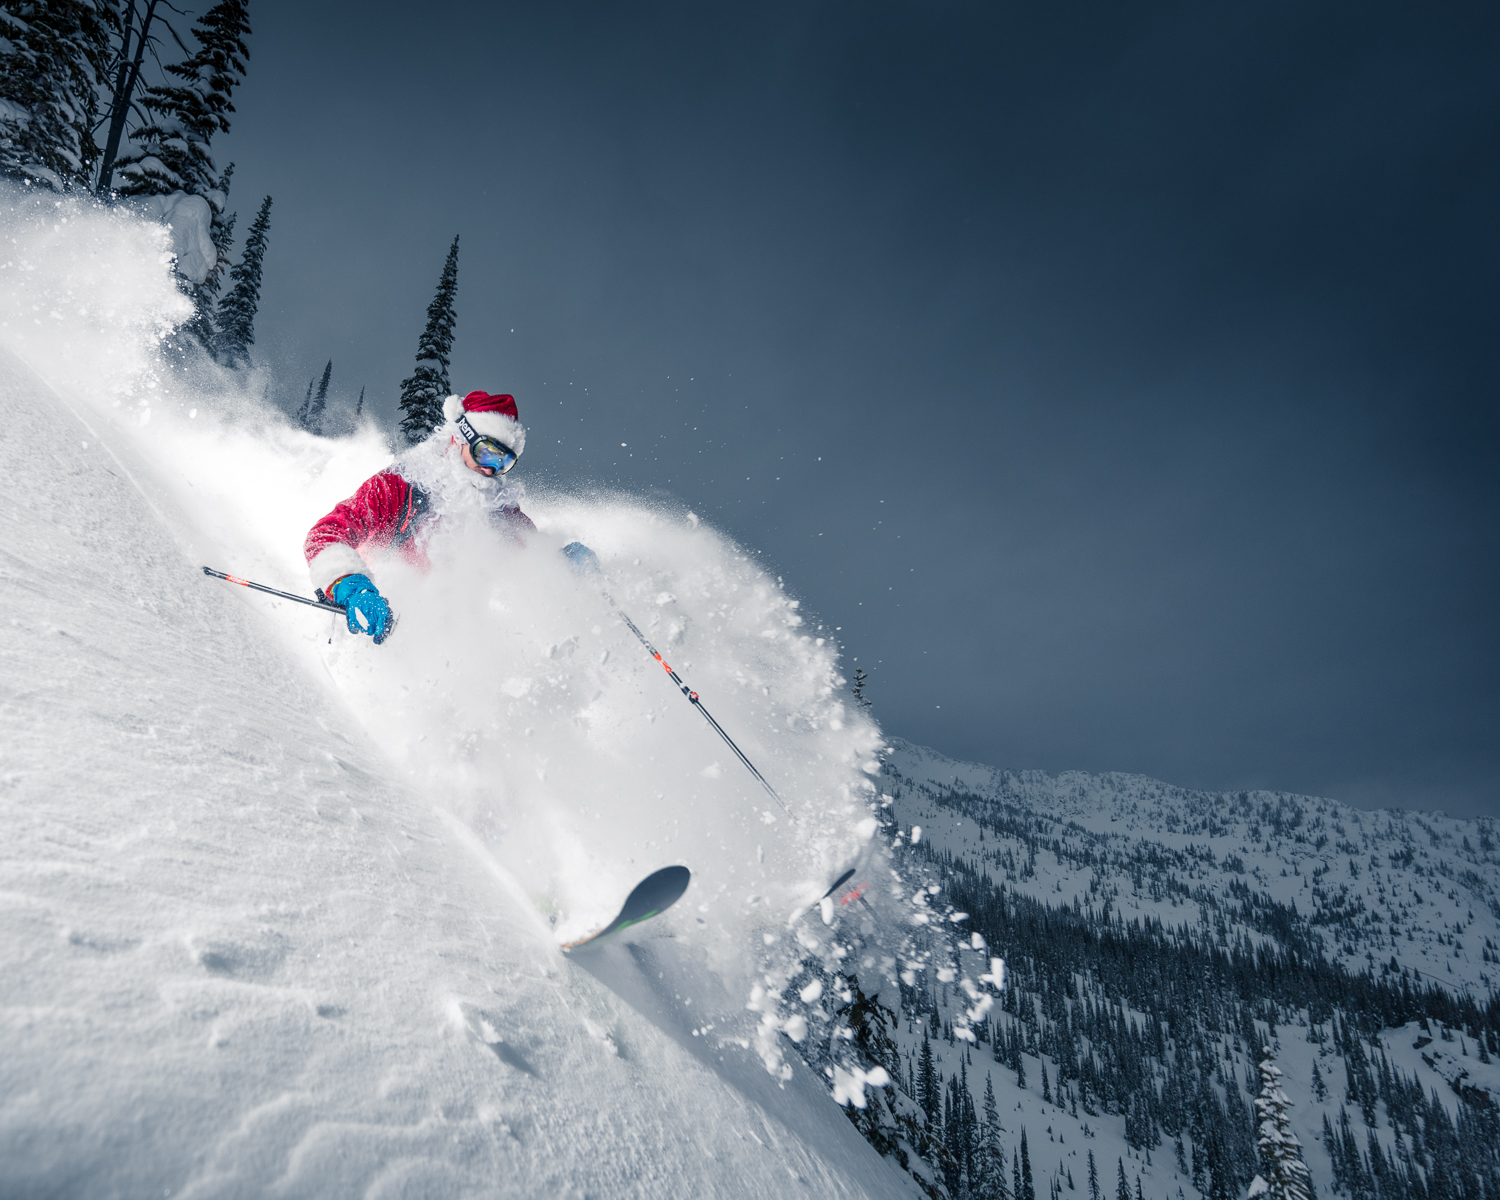 Santa goes catskiing at Valhalla Powdercats